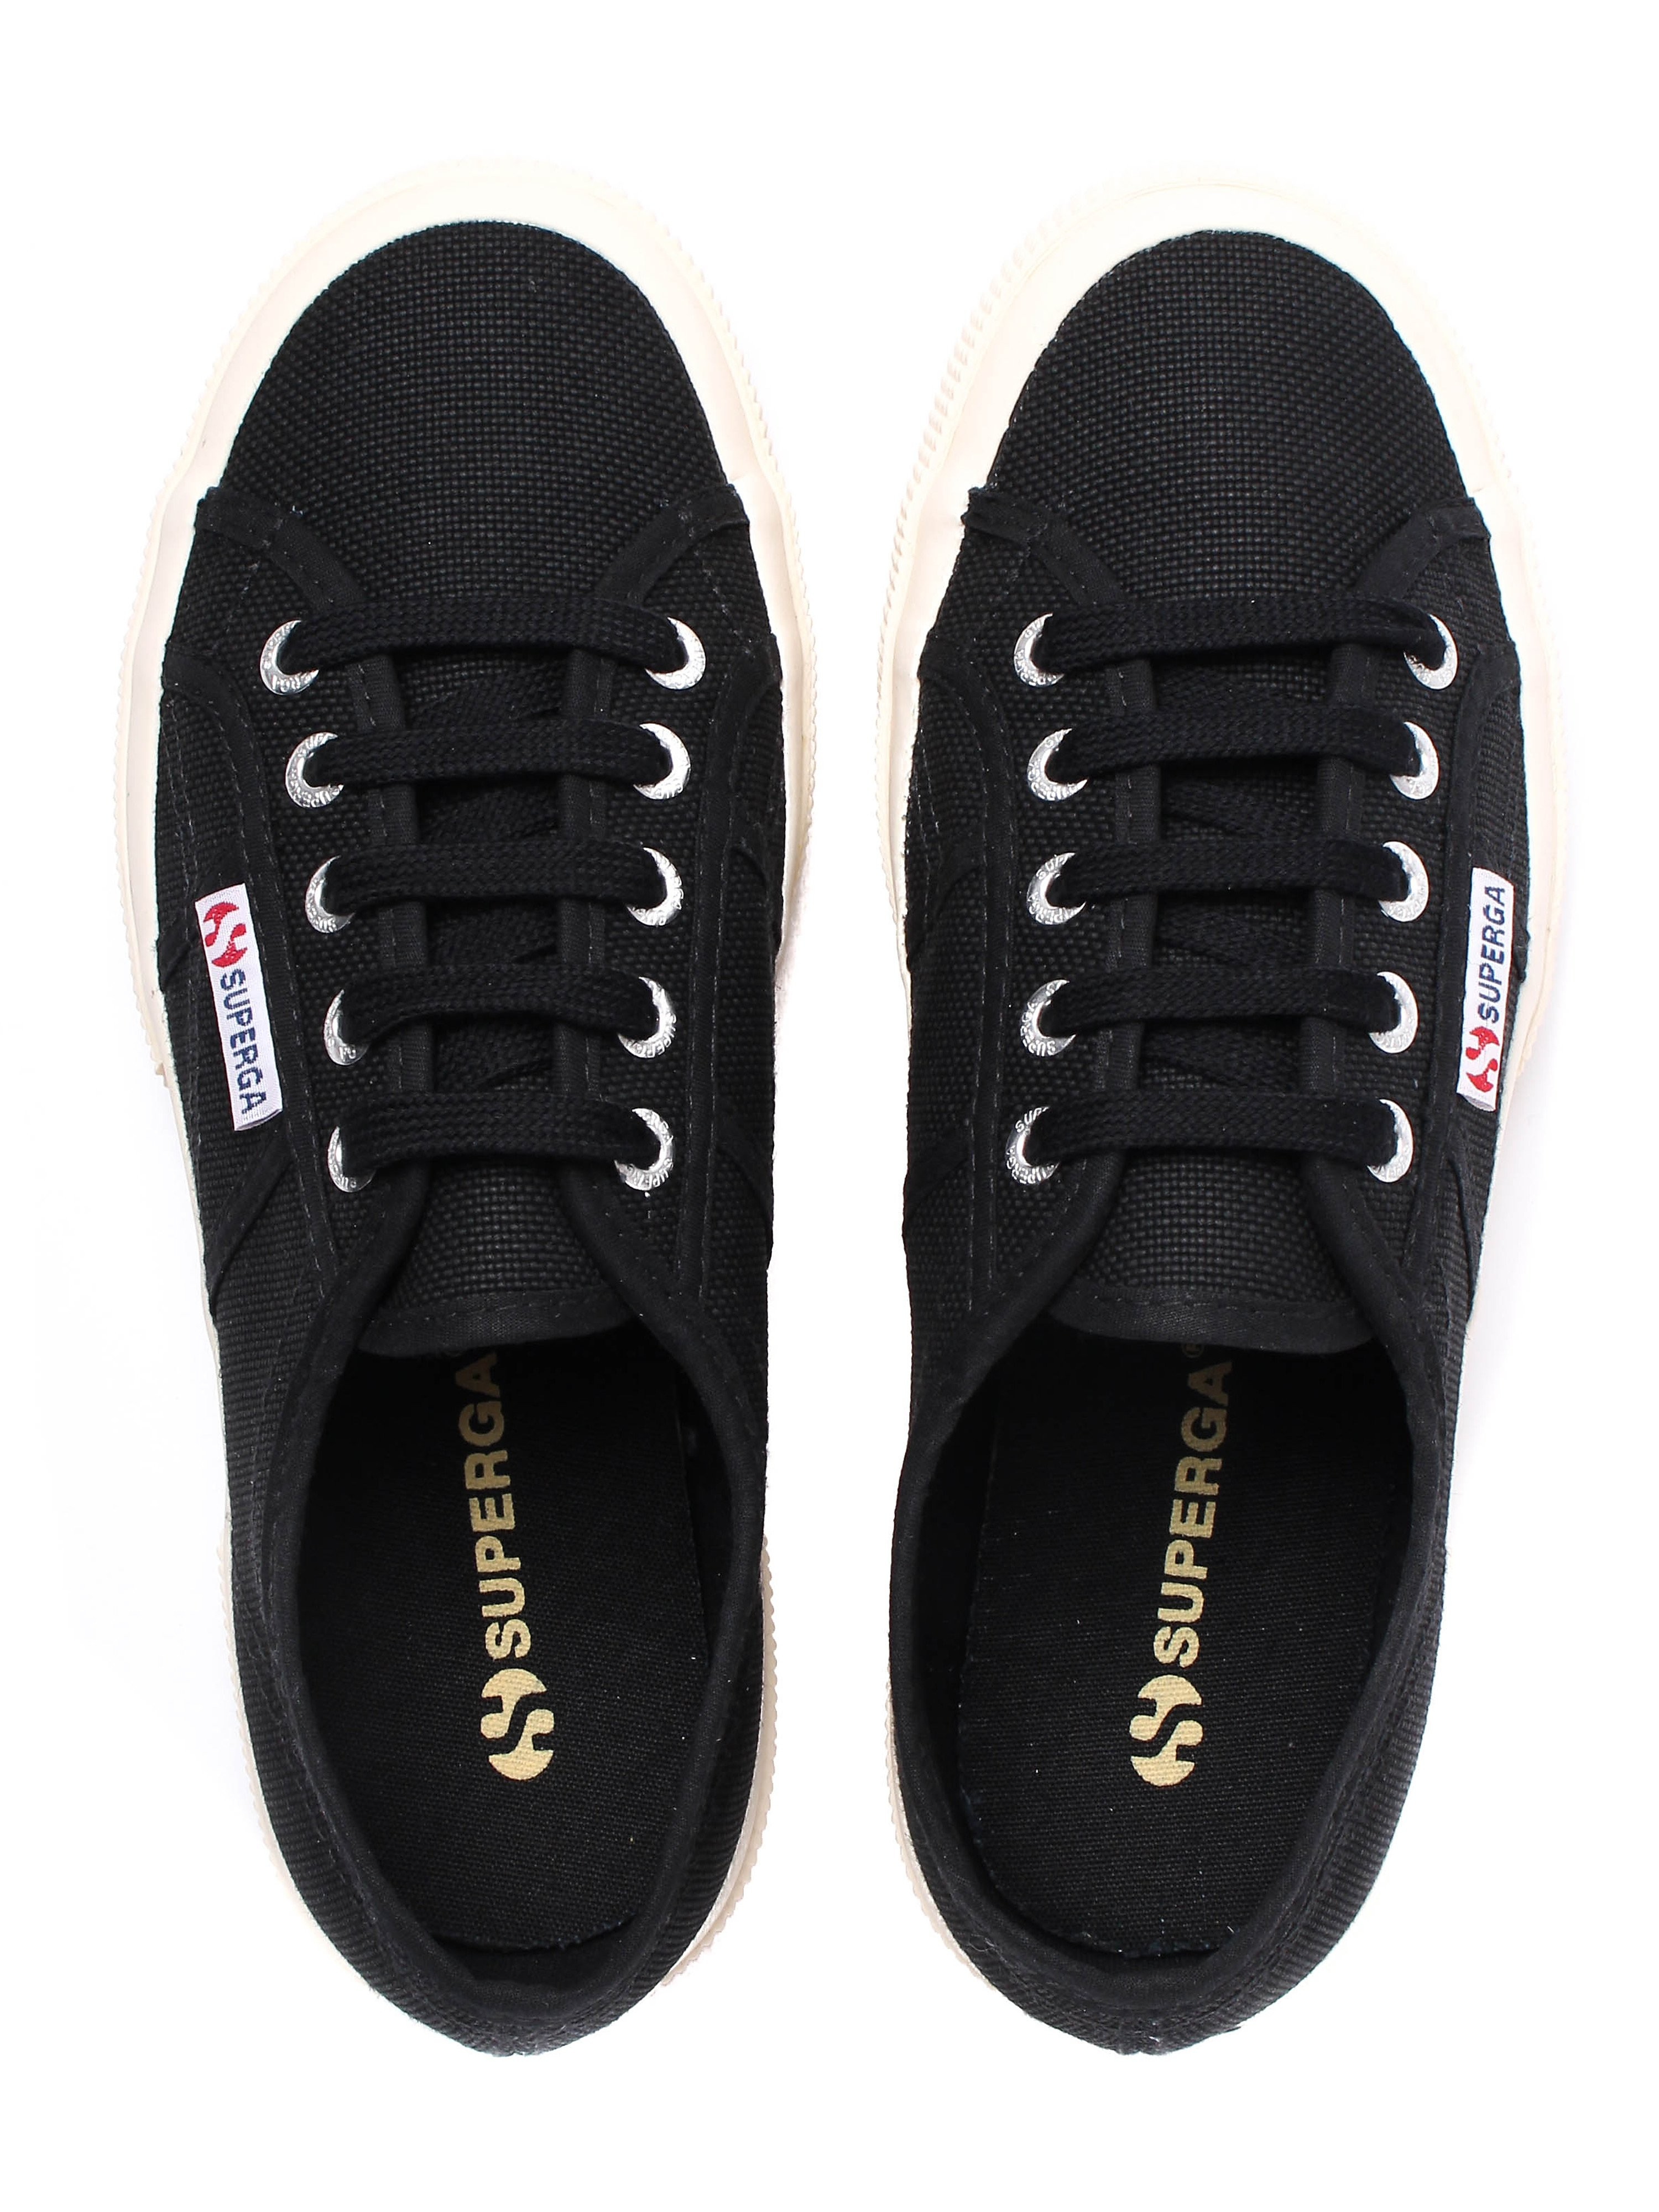 Superga Women's 2750 Cotu Canvas Trainers - Black